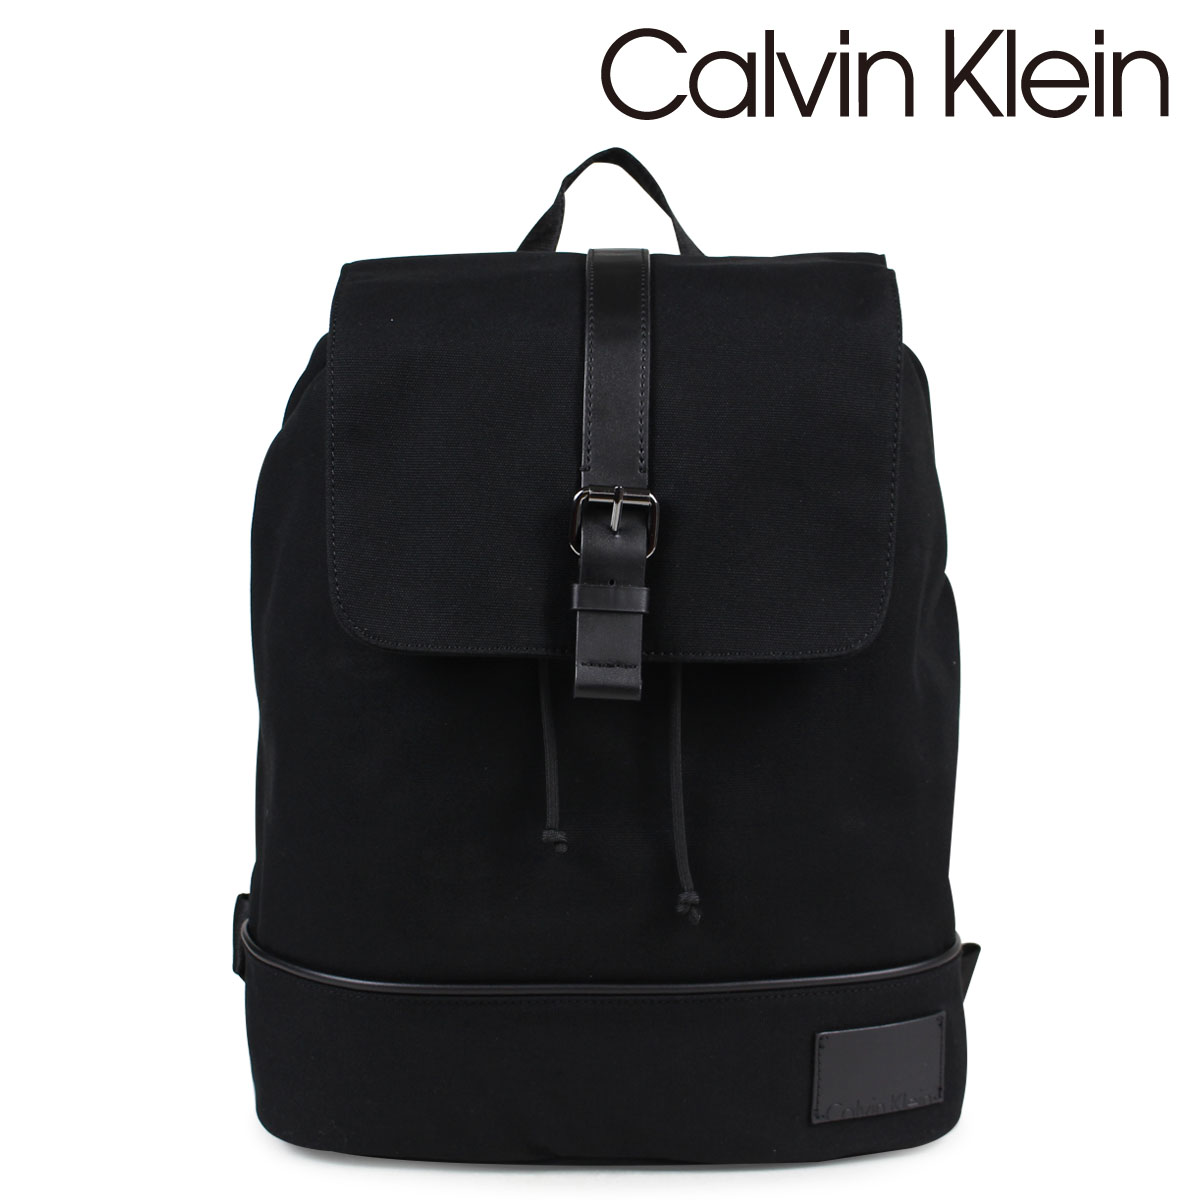 a0d09b5a9e7 Calvin Klein Calvin Klein bag men rucksack backpack COATED CANVAS PU  BACKPACK black black 2975019796 ...